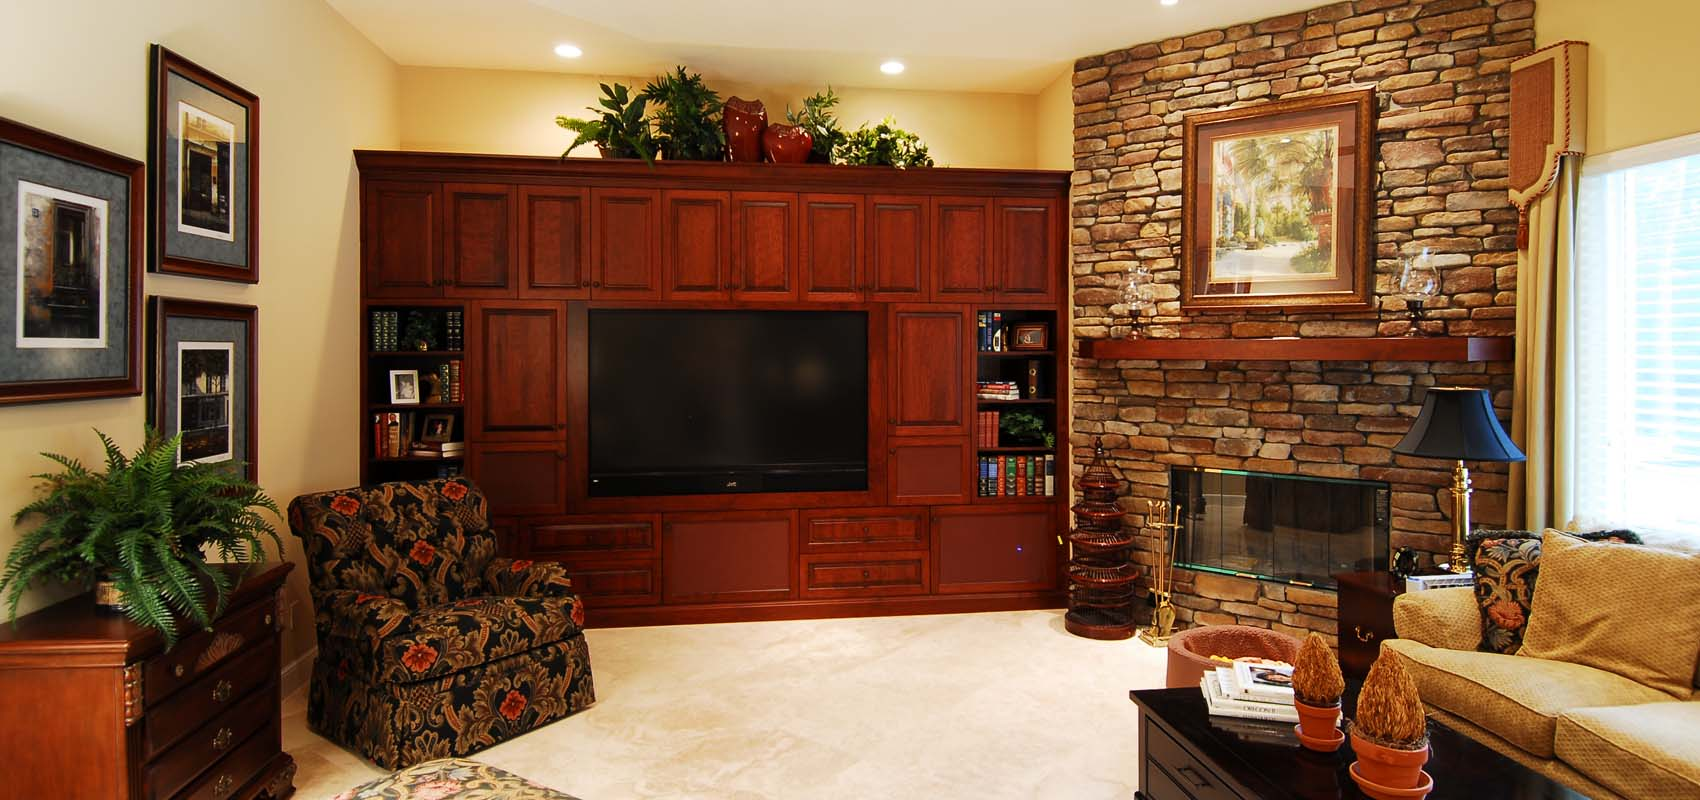 Custom Built-In Entertainment Centers by River City Custom Cabinetry